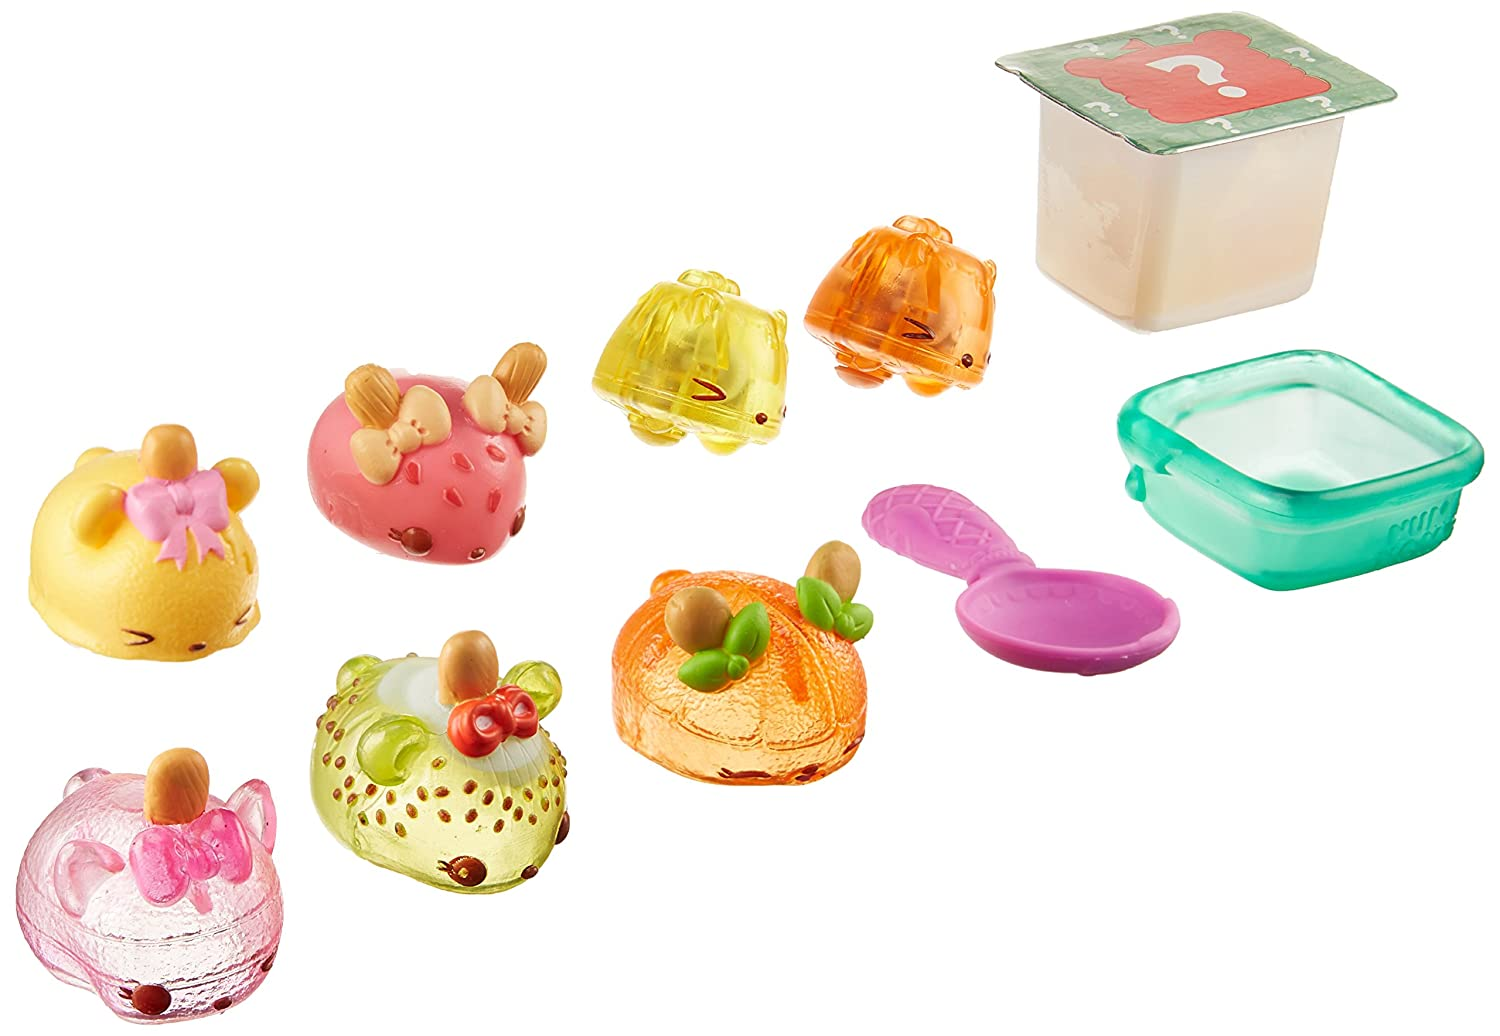 Save 70% off Num Noms at Amazo...